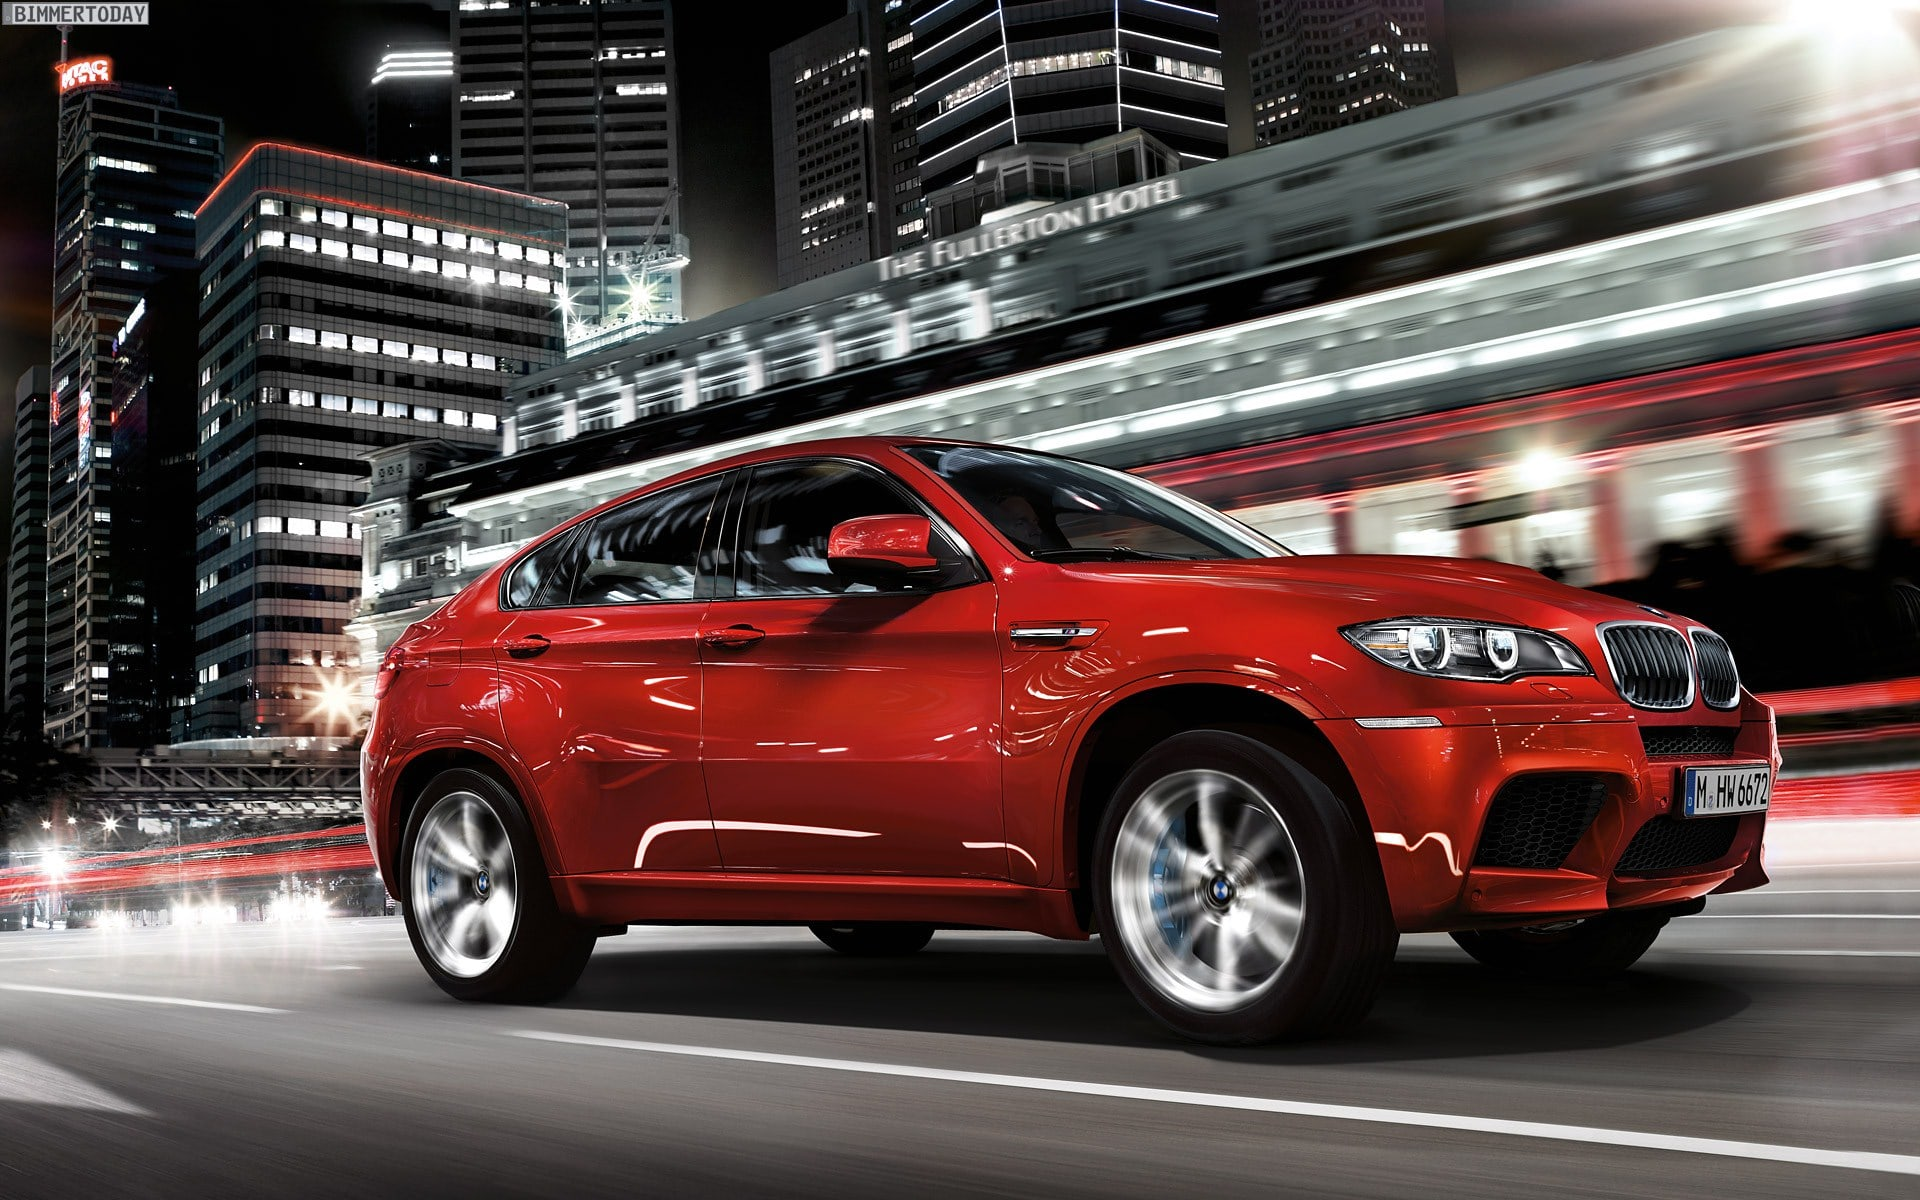 BMW X6 wallpaper for mobile